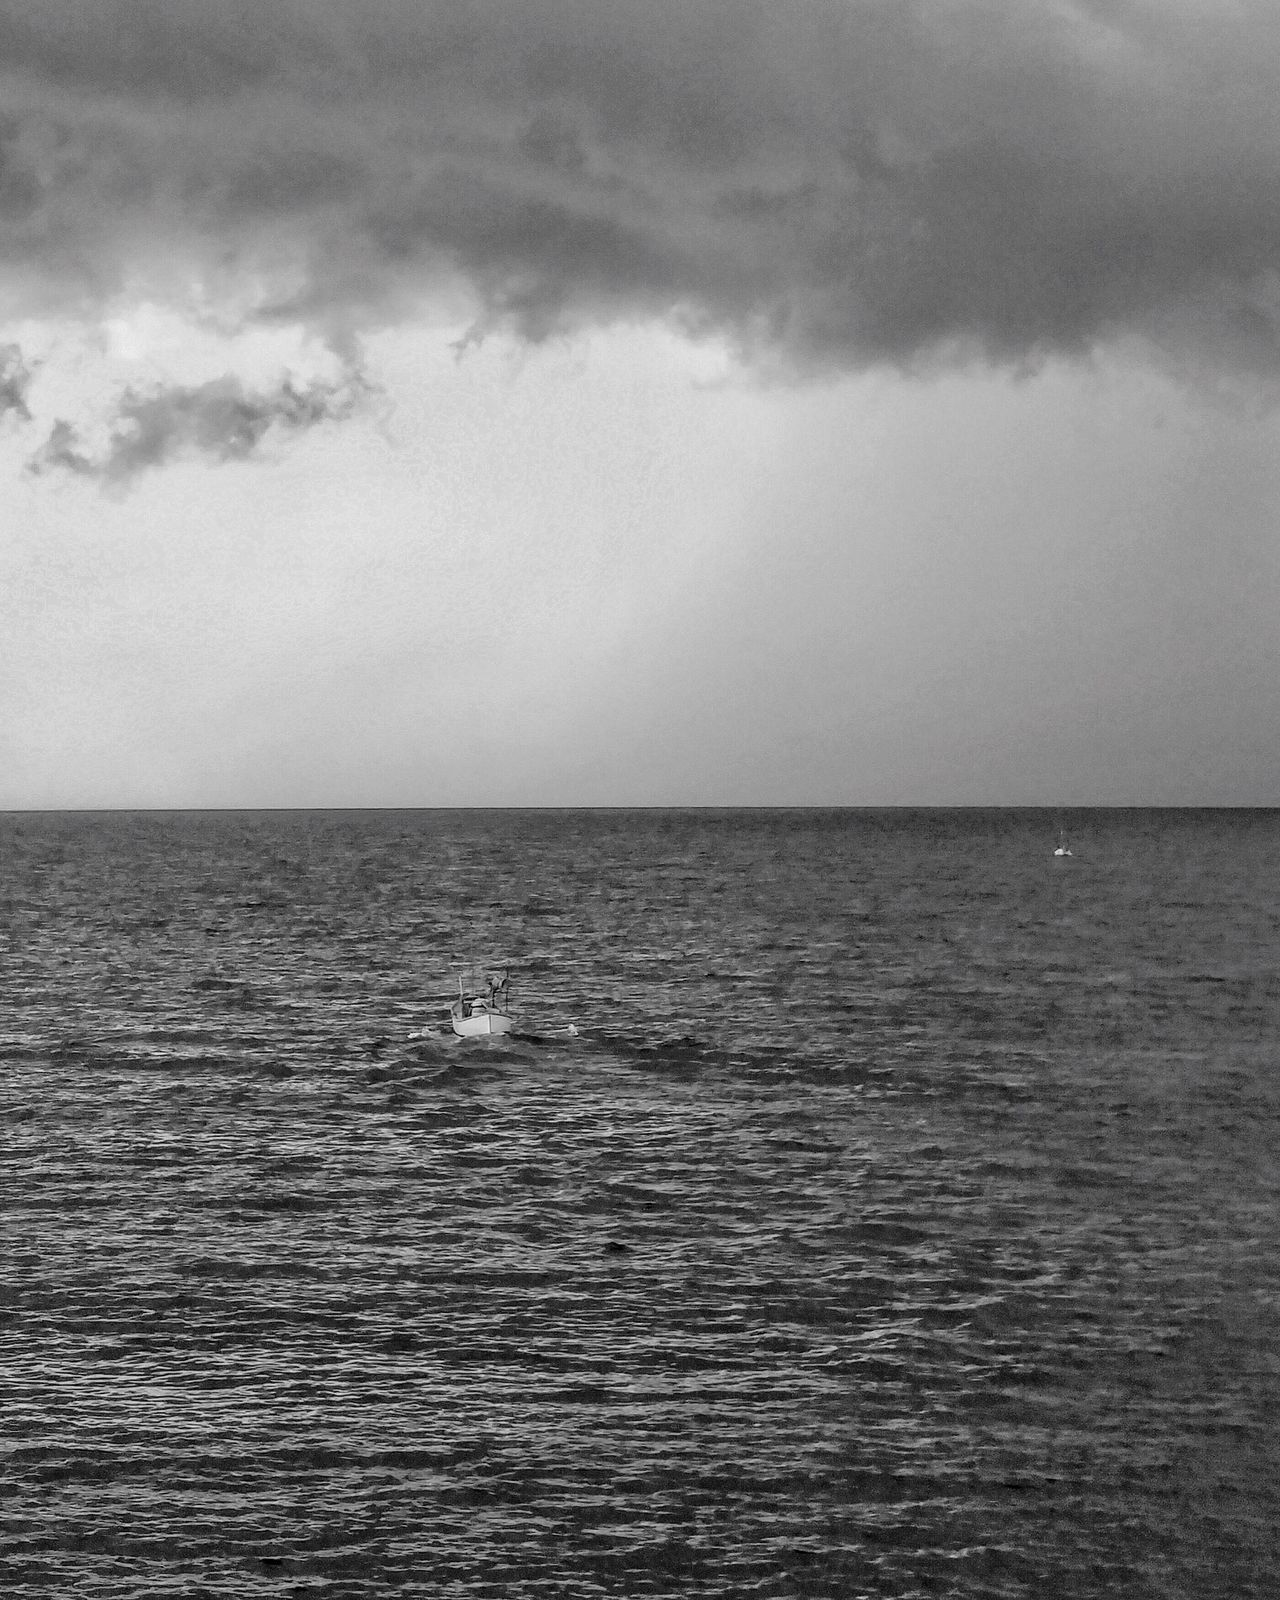 Horizon Over Water Sea Idyllic Beauty In Nature Waterfront Seascape Nature Cloudy Boat Sailing Sky Cloud - Sky Clouds Storm Black And White Blackandwhite EyeEm Best Shots EyeEm Nature Lover EyeEm Gallery EyeEm Best Shots - Black + White EyeEm